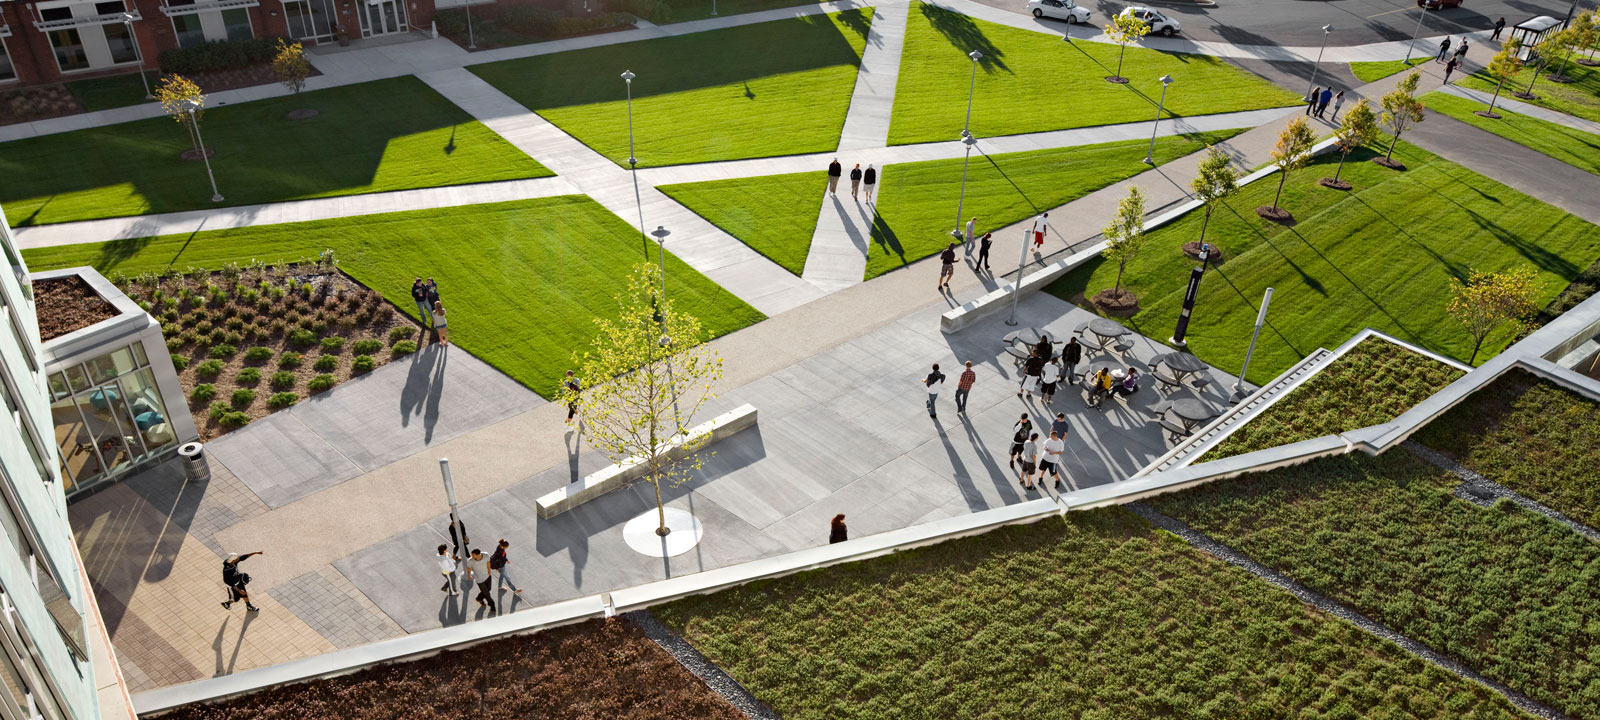 American Society Of Landscape Architects